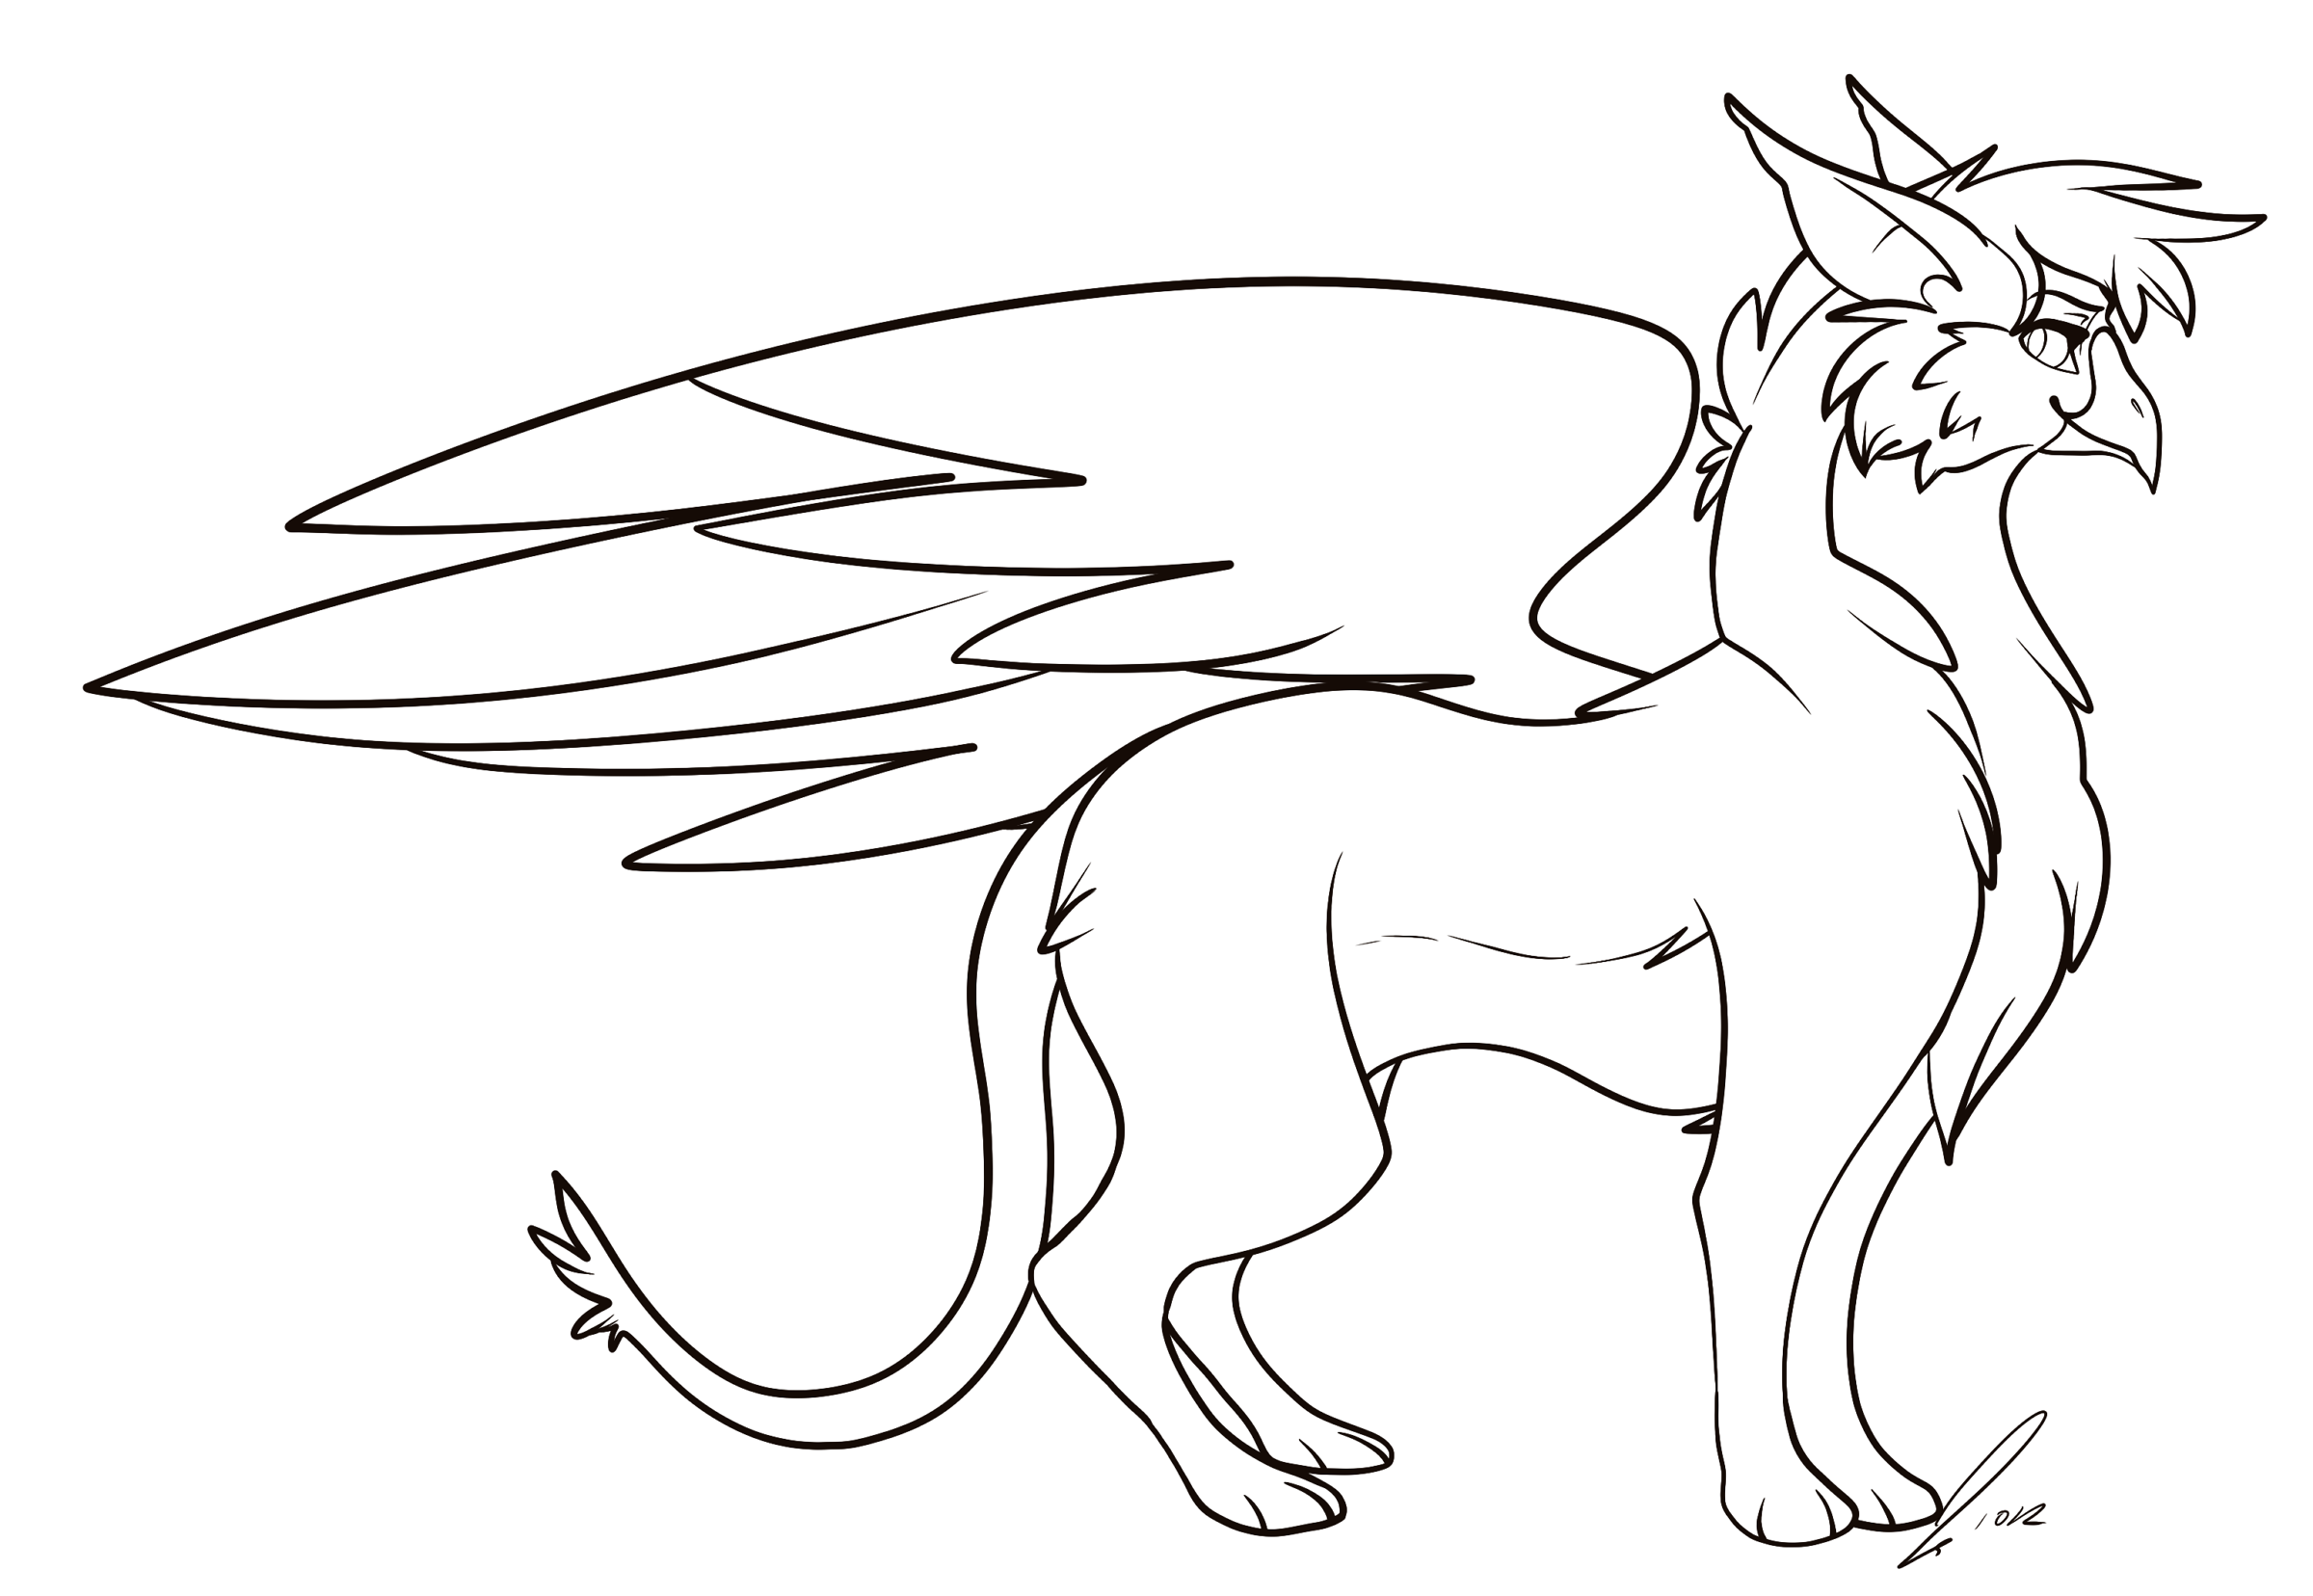 Gryphon Lines by jaclynonacloudlines